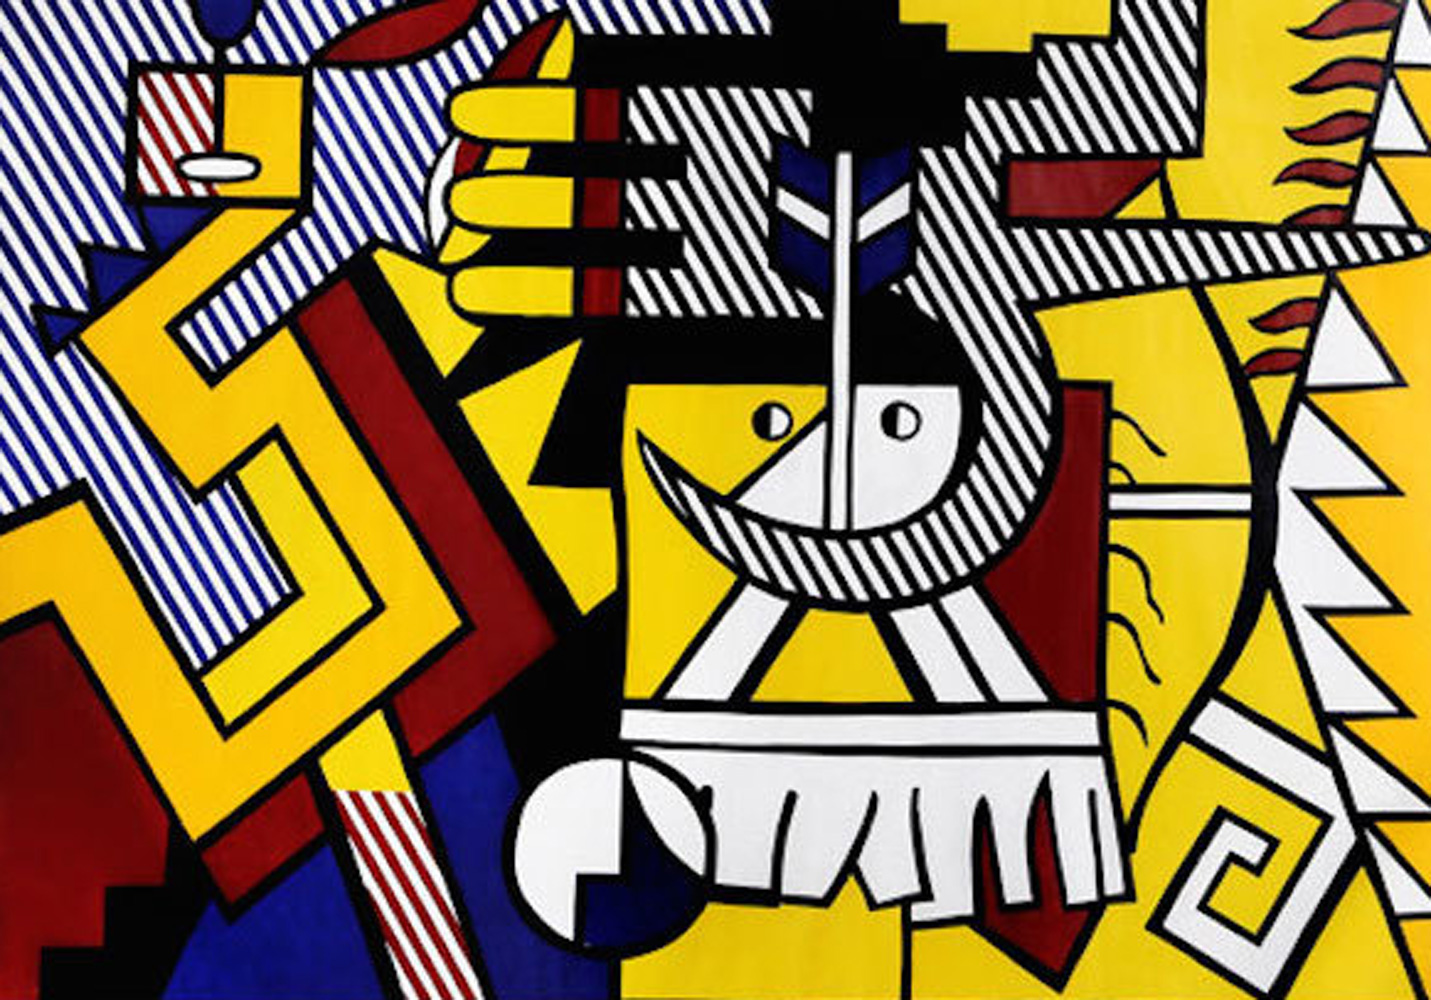 American Indian Theme VI 1980 by Roy Lichtenstein